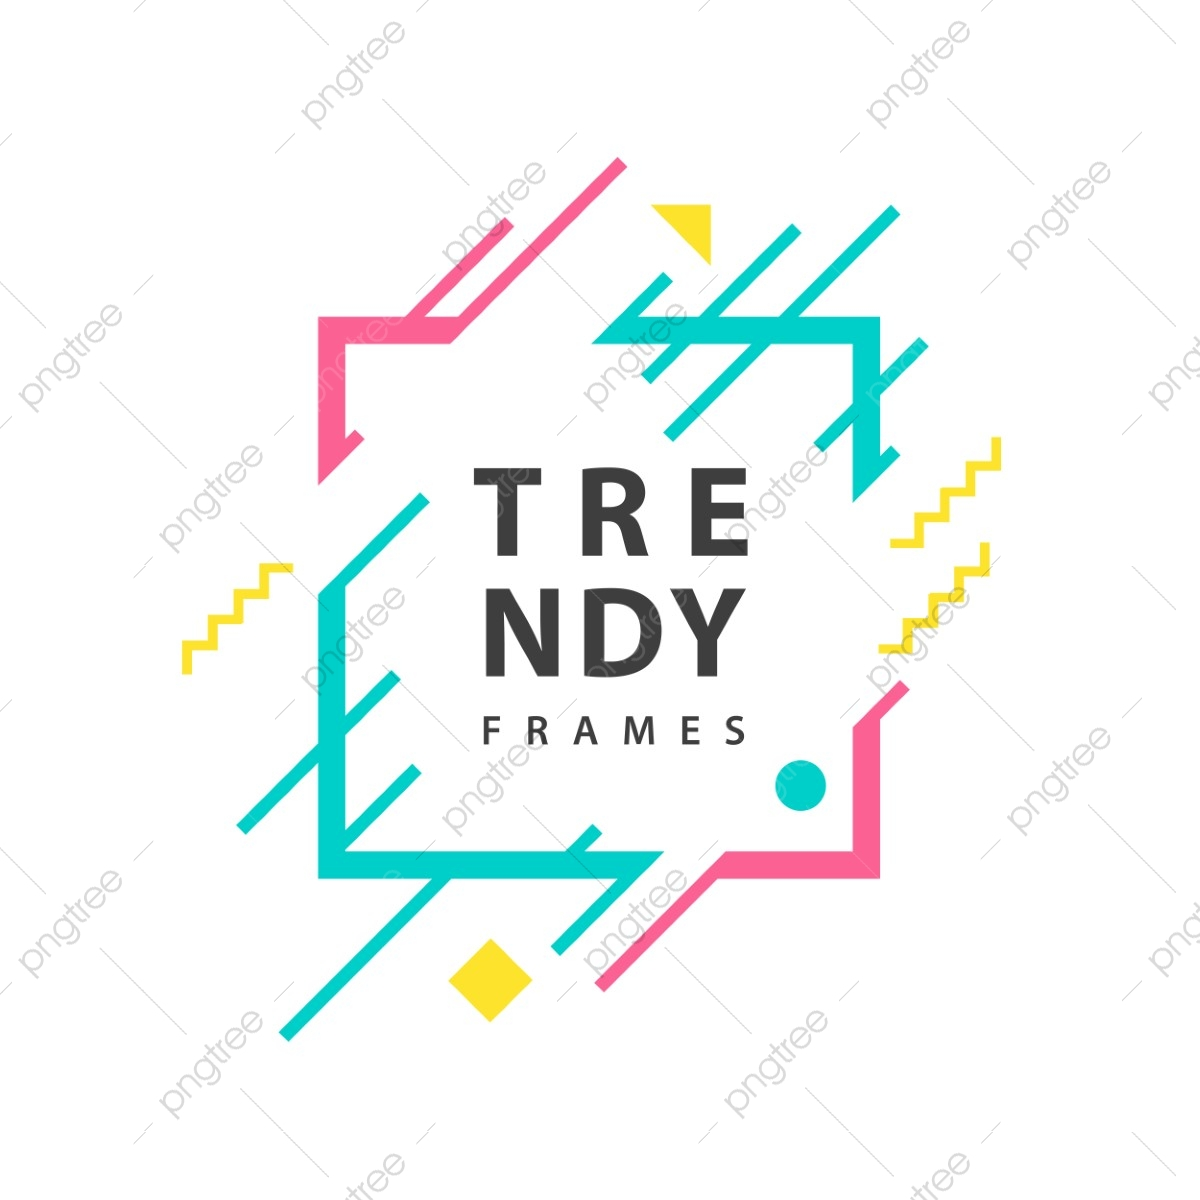 Square Frames With Geometric Lines Vector Borders With Trendy Shapes Graphics Design Templates For Banners Flyers Posters Cards Frame Template Background Png And Vector With Transparent Background For Free Download,Abstract Geometric Line Design